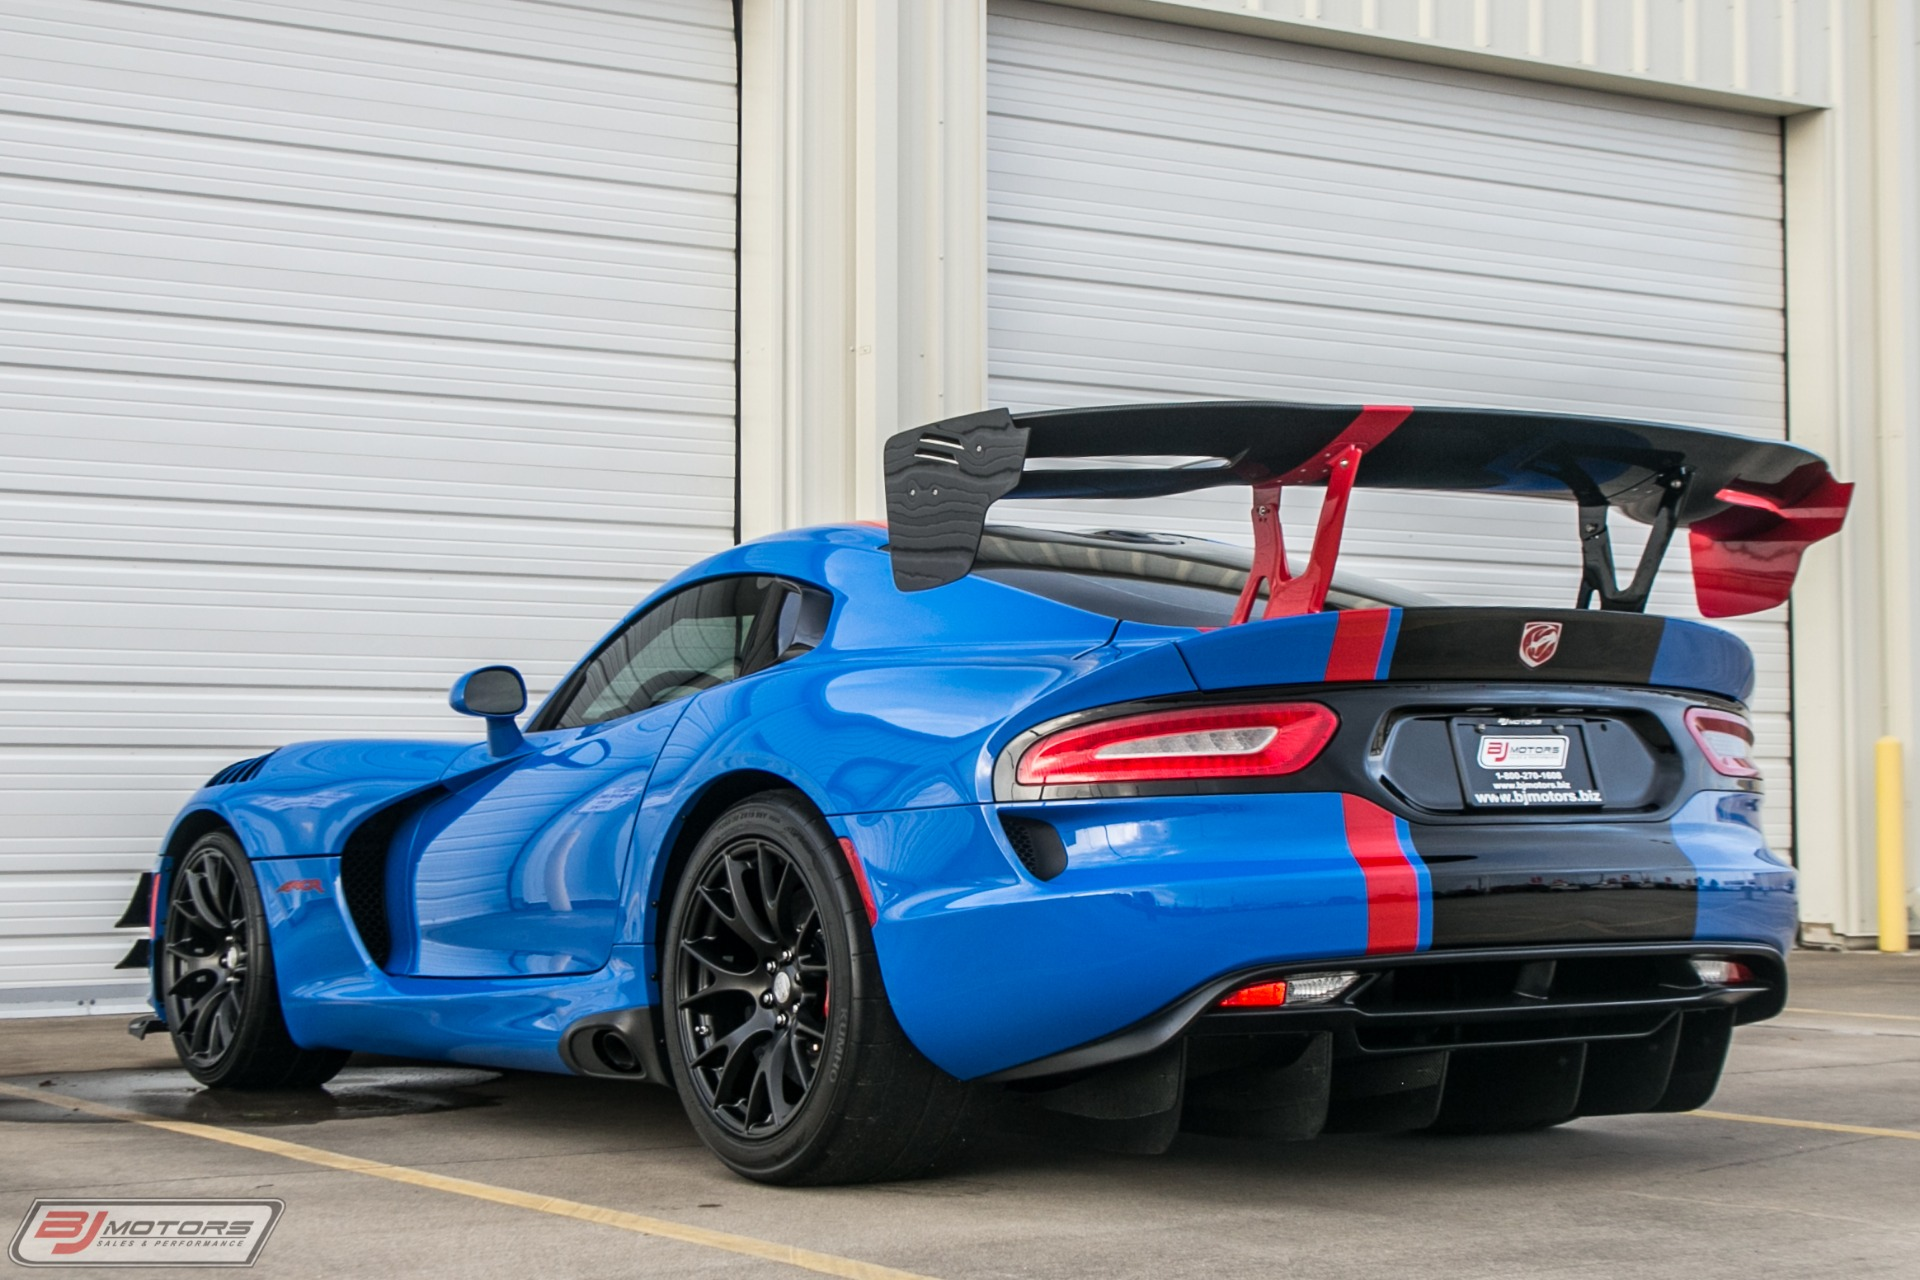 Dodge Vipers For Sale >> Used 2017 Dodge Viper Acr For Sale 149 995 Bj Motors